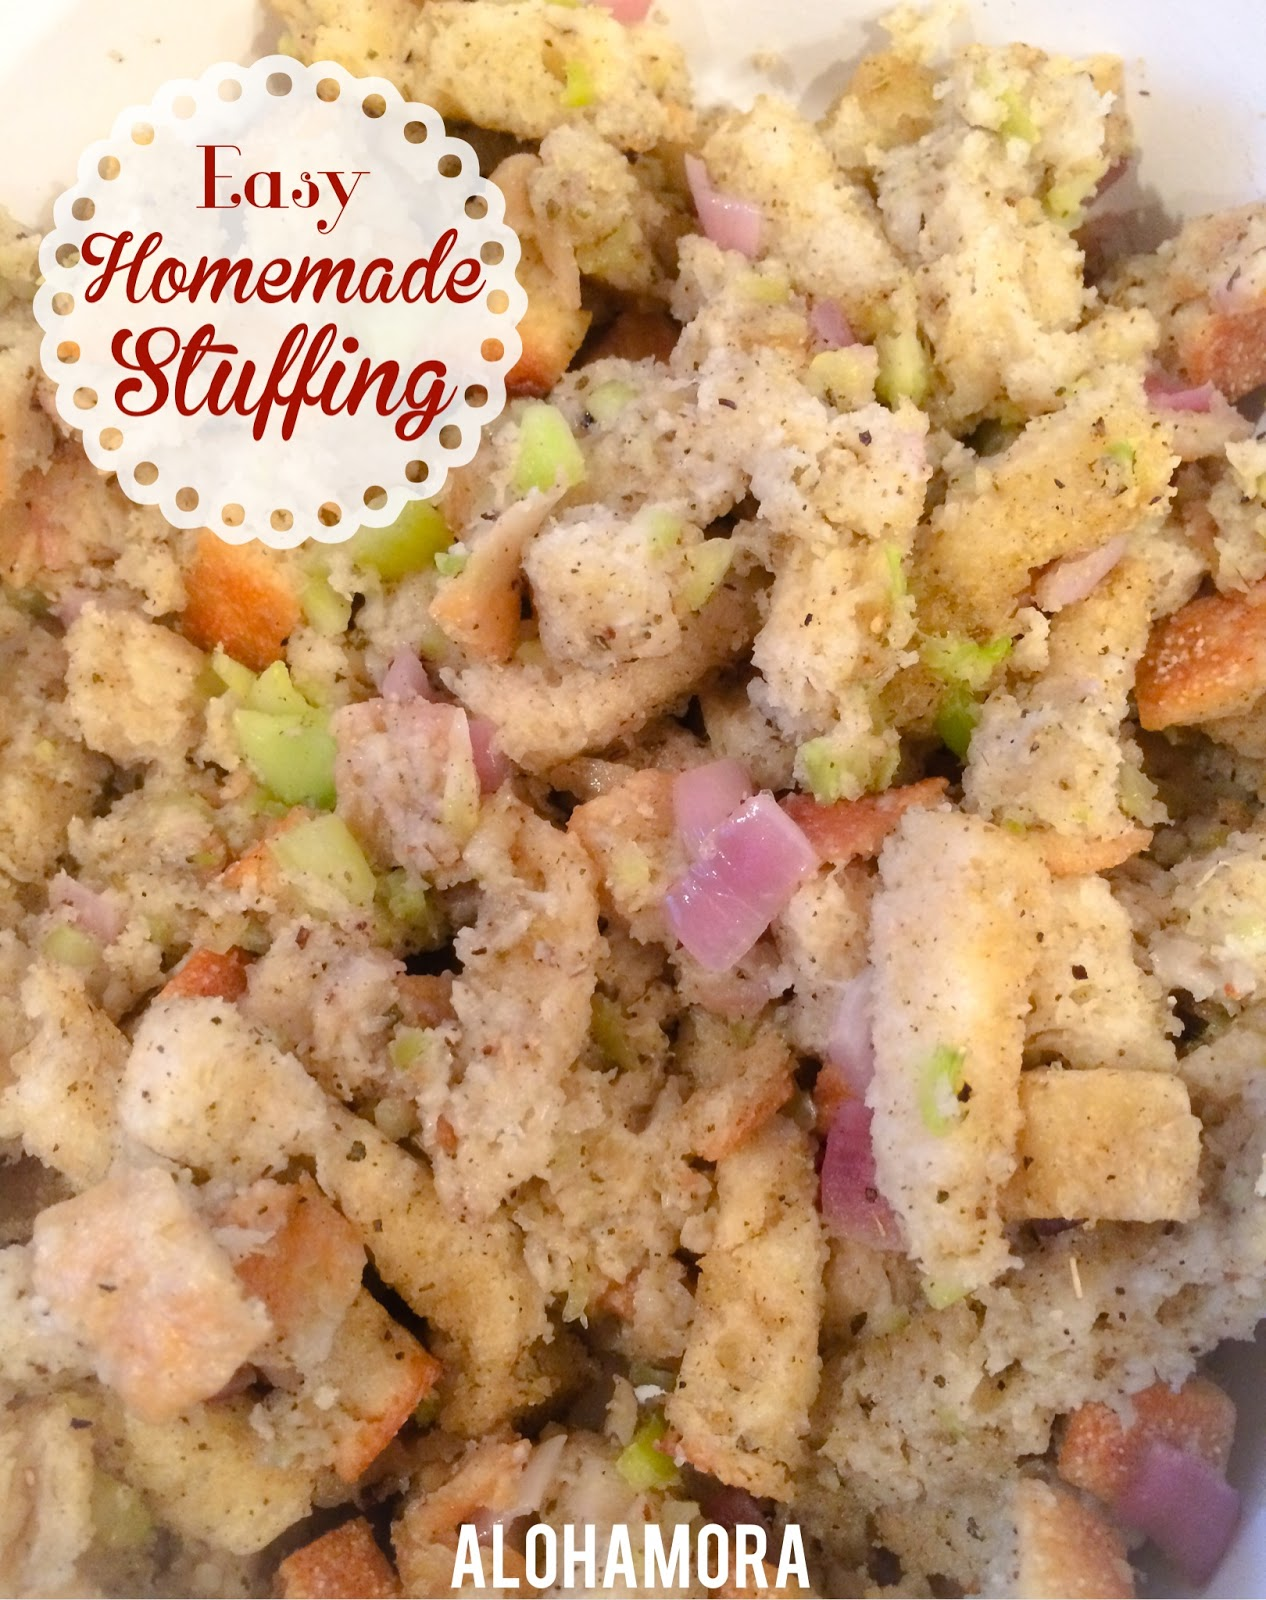 Easy Homemade Stuffing.  Just as easy as a box stuffing, but it tastes a million times better.  Seriously, this stuffing takes 10 minutes to throw together, and you can let it sit while you get everything else.  Perfect side dish for Thanksgiving, Sunday dinner, or anytime really.  Alohamora Open a Book http://alohamoraopenabook.blogspot.com/